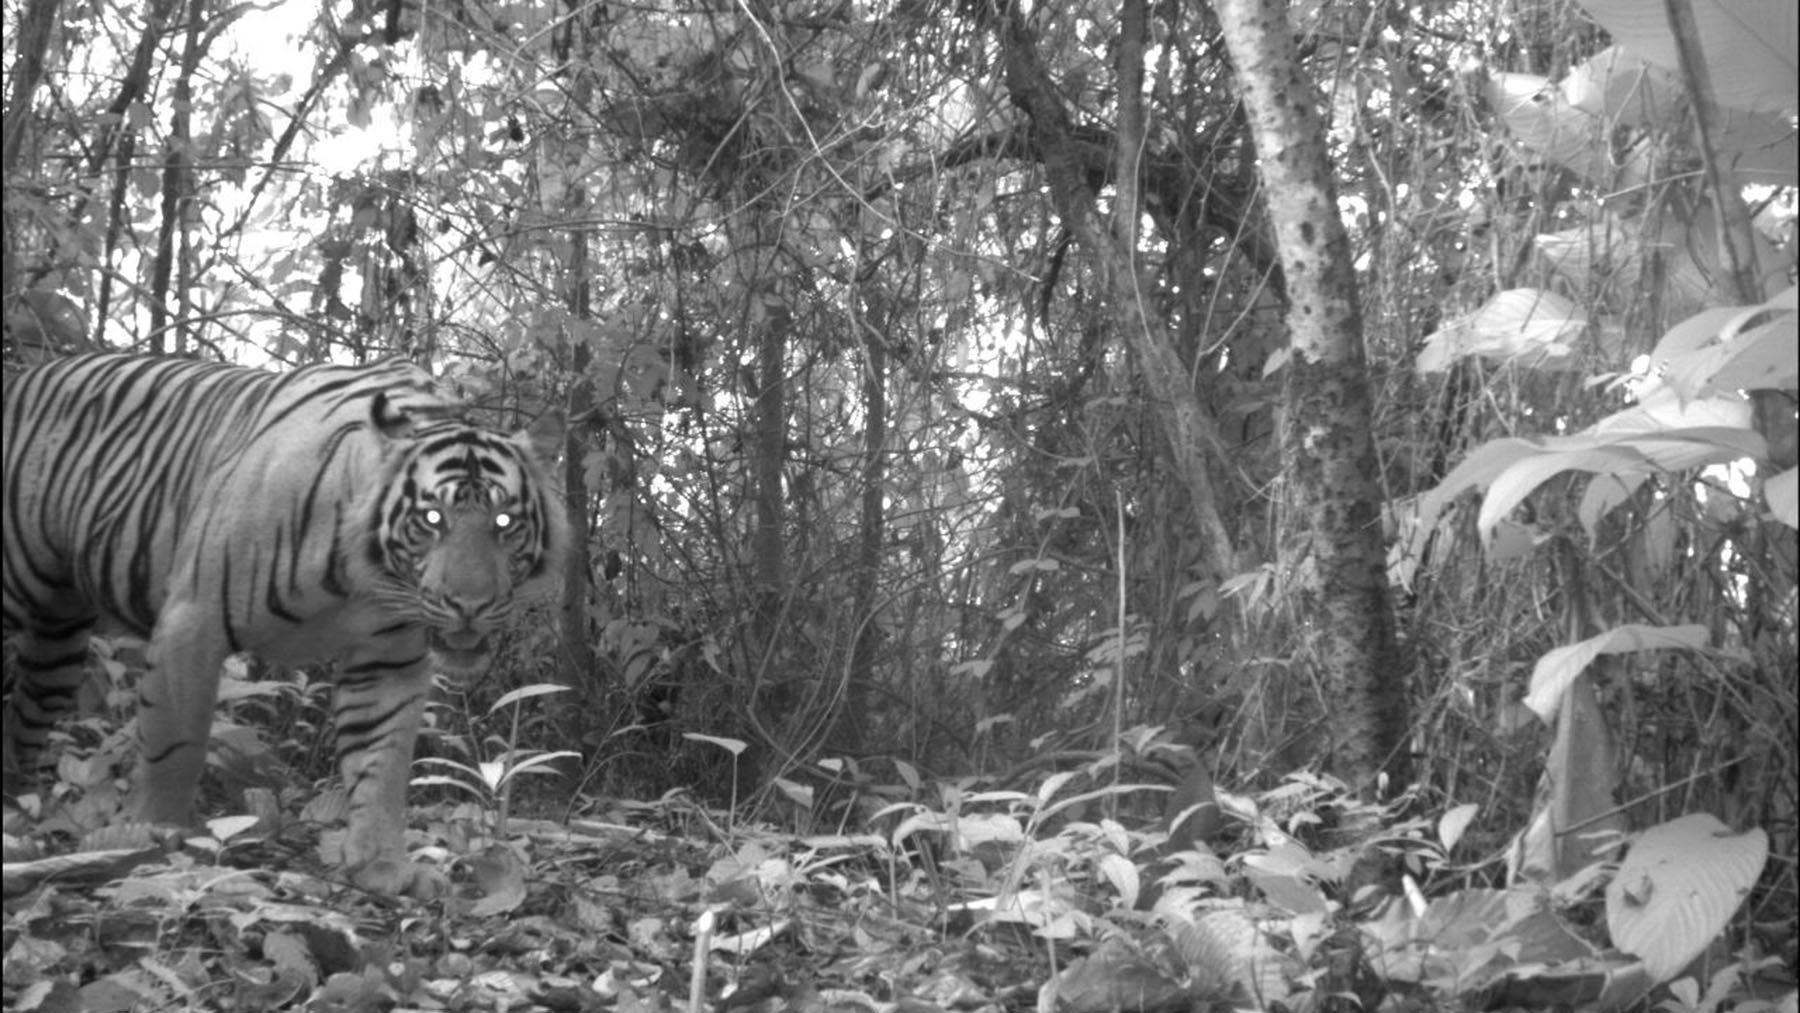 Allen's camera traps captured Sumatran tigers an average of six times during annual 30-day monitoring periods. Photo provided by Max Allen